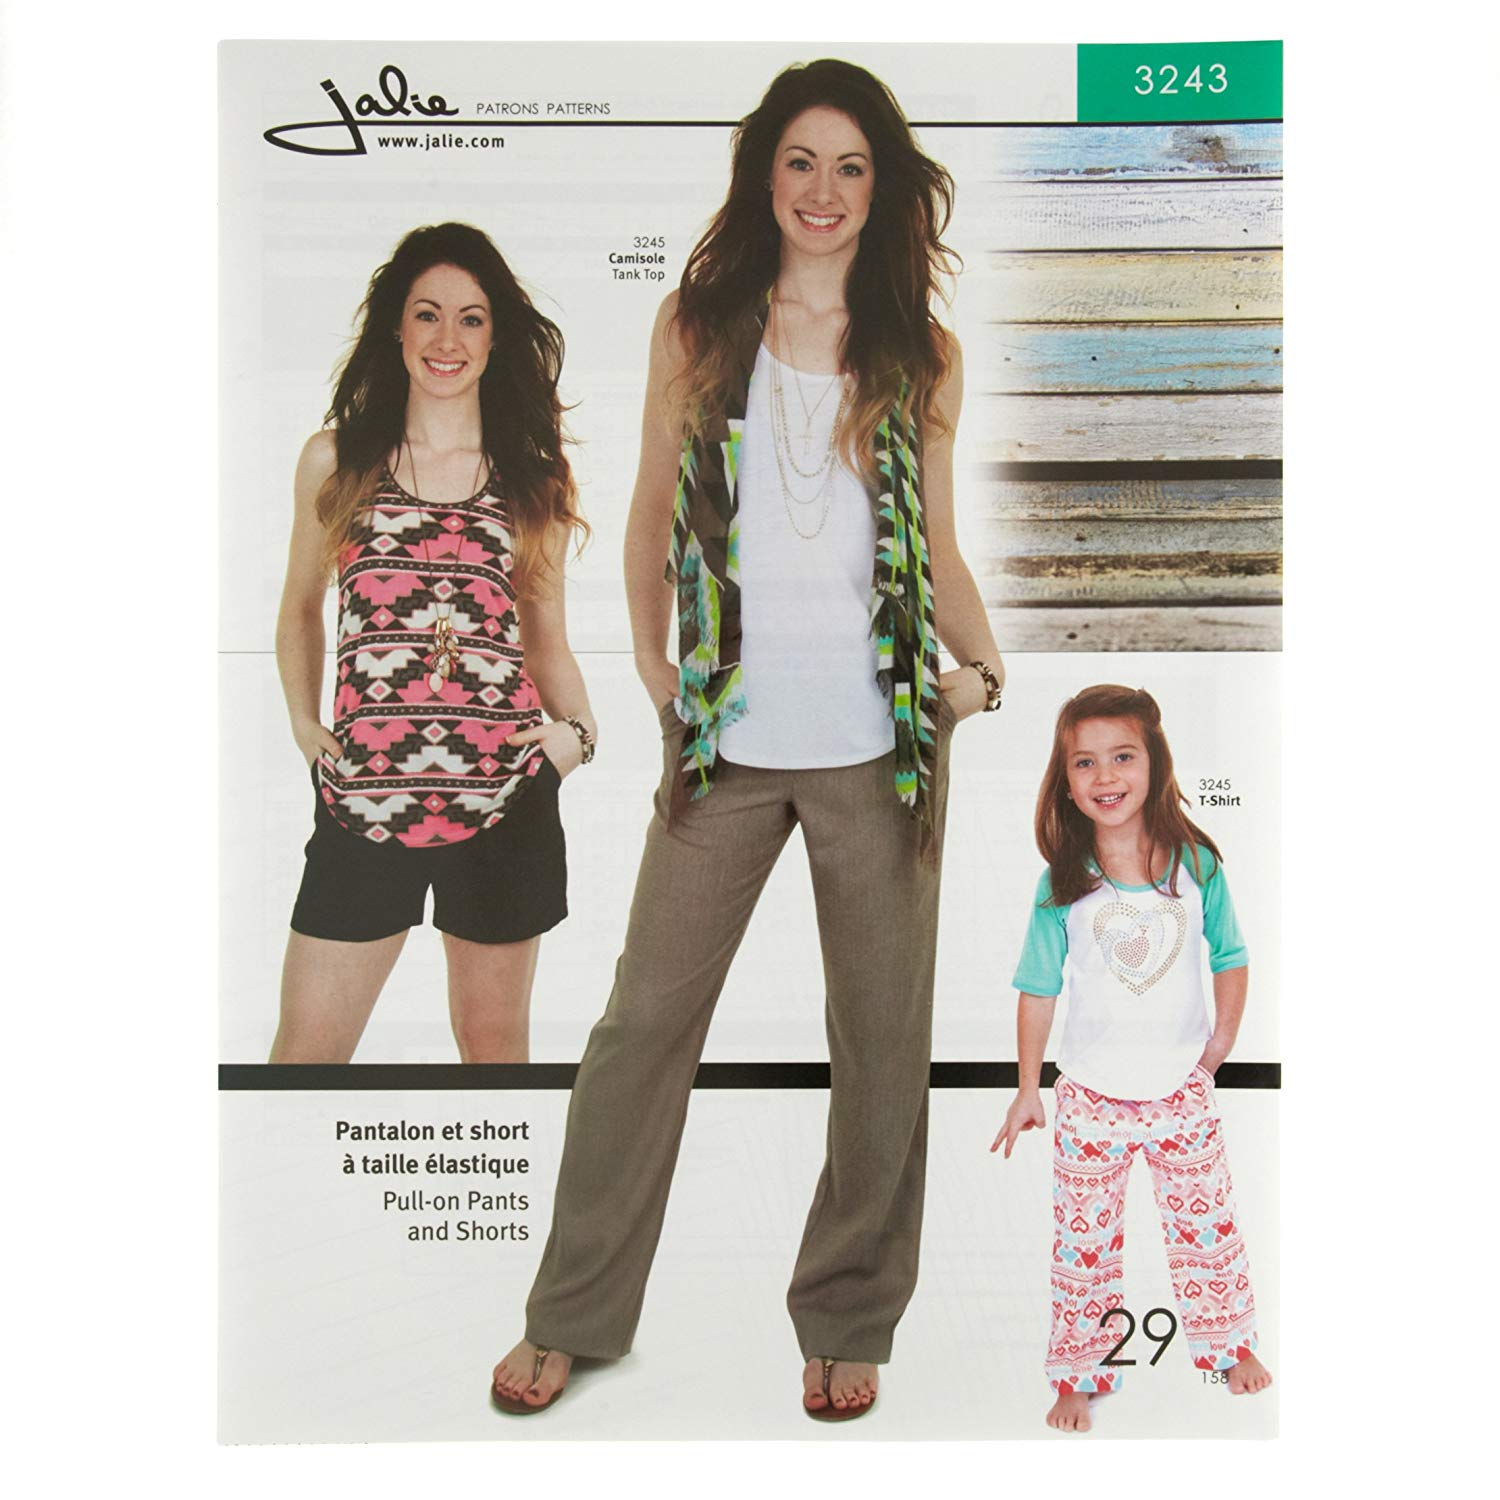 3792bfed7898 Get Quotations · JALIE PATTERNS Jalie Pull-On Pants and Shorts Pattern